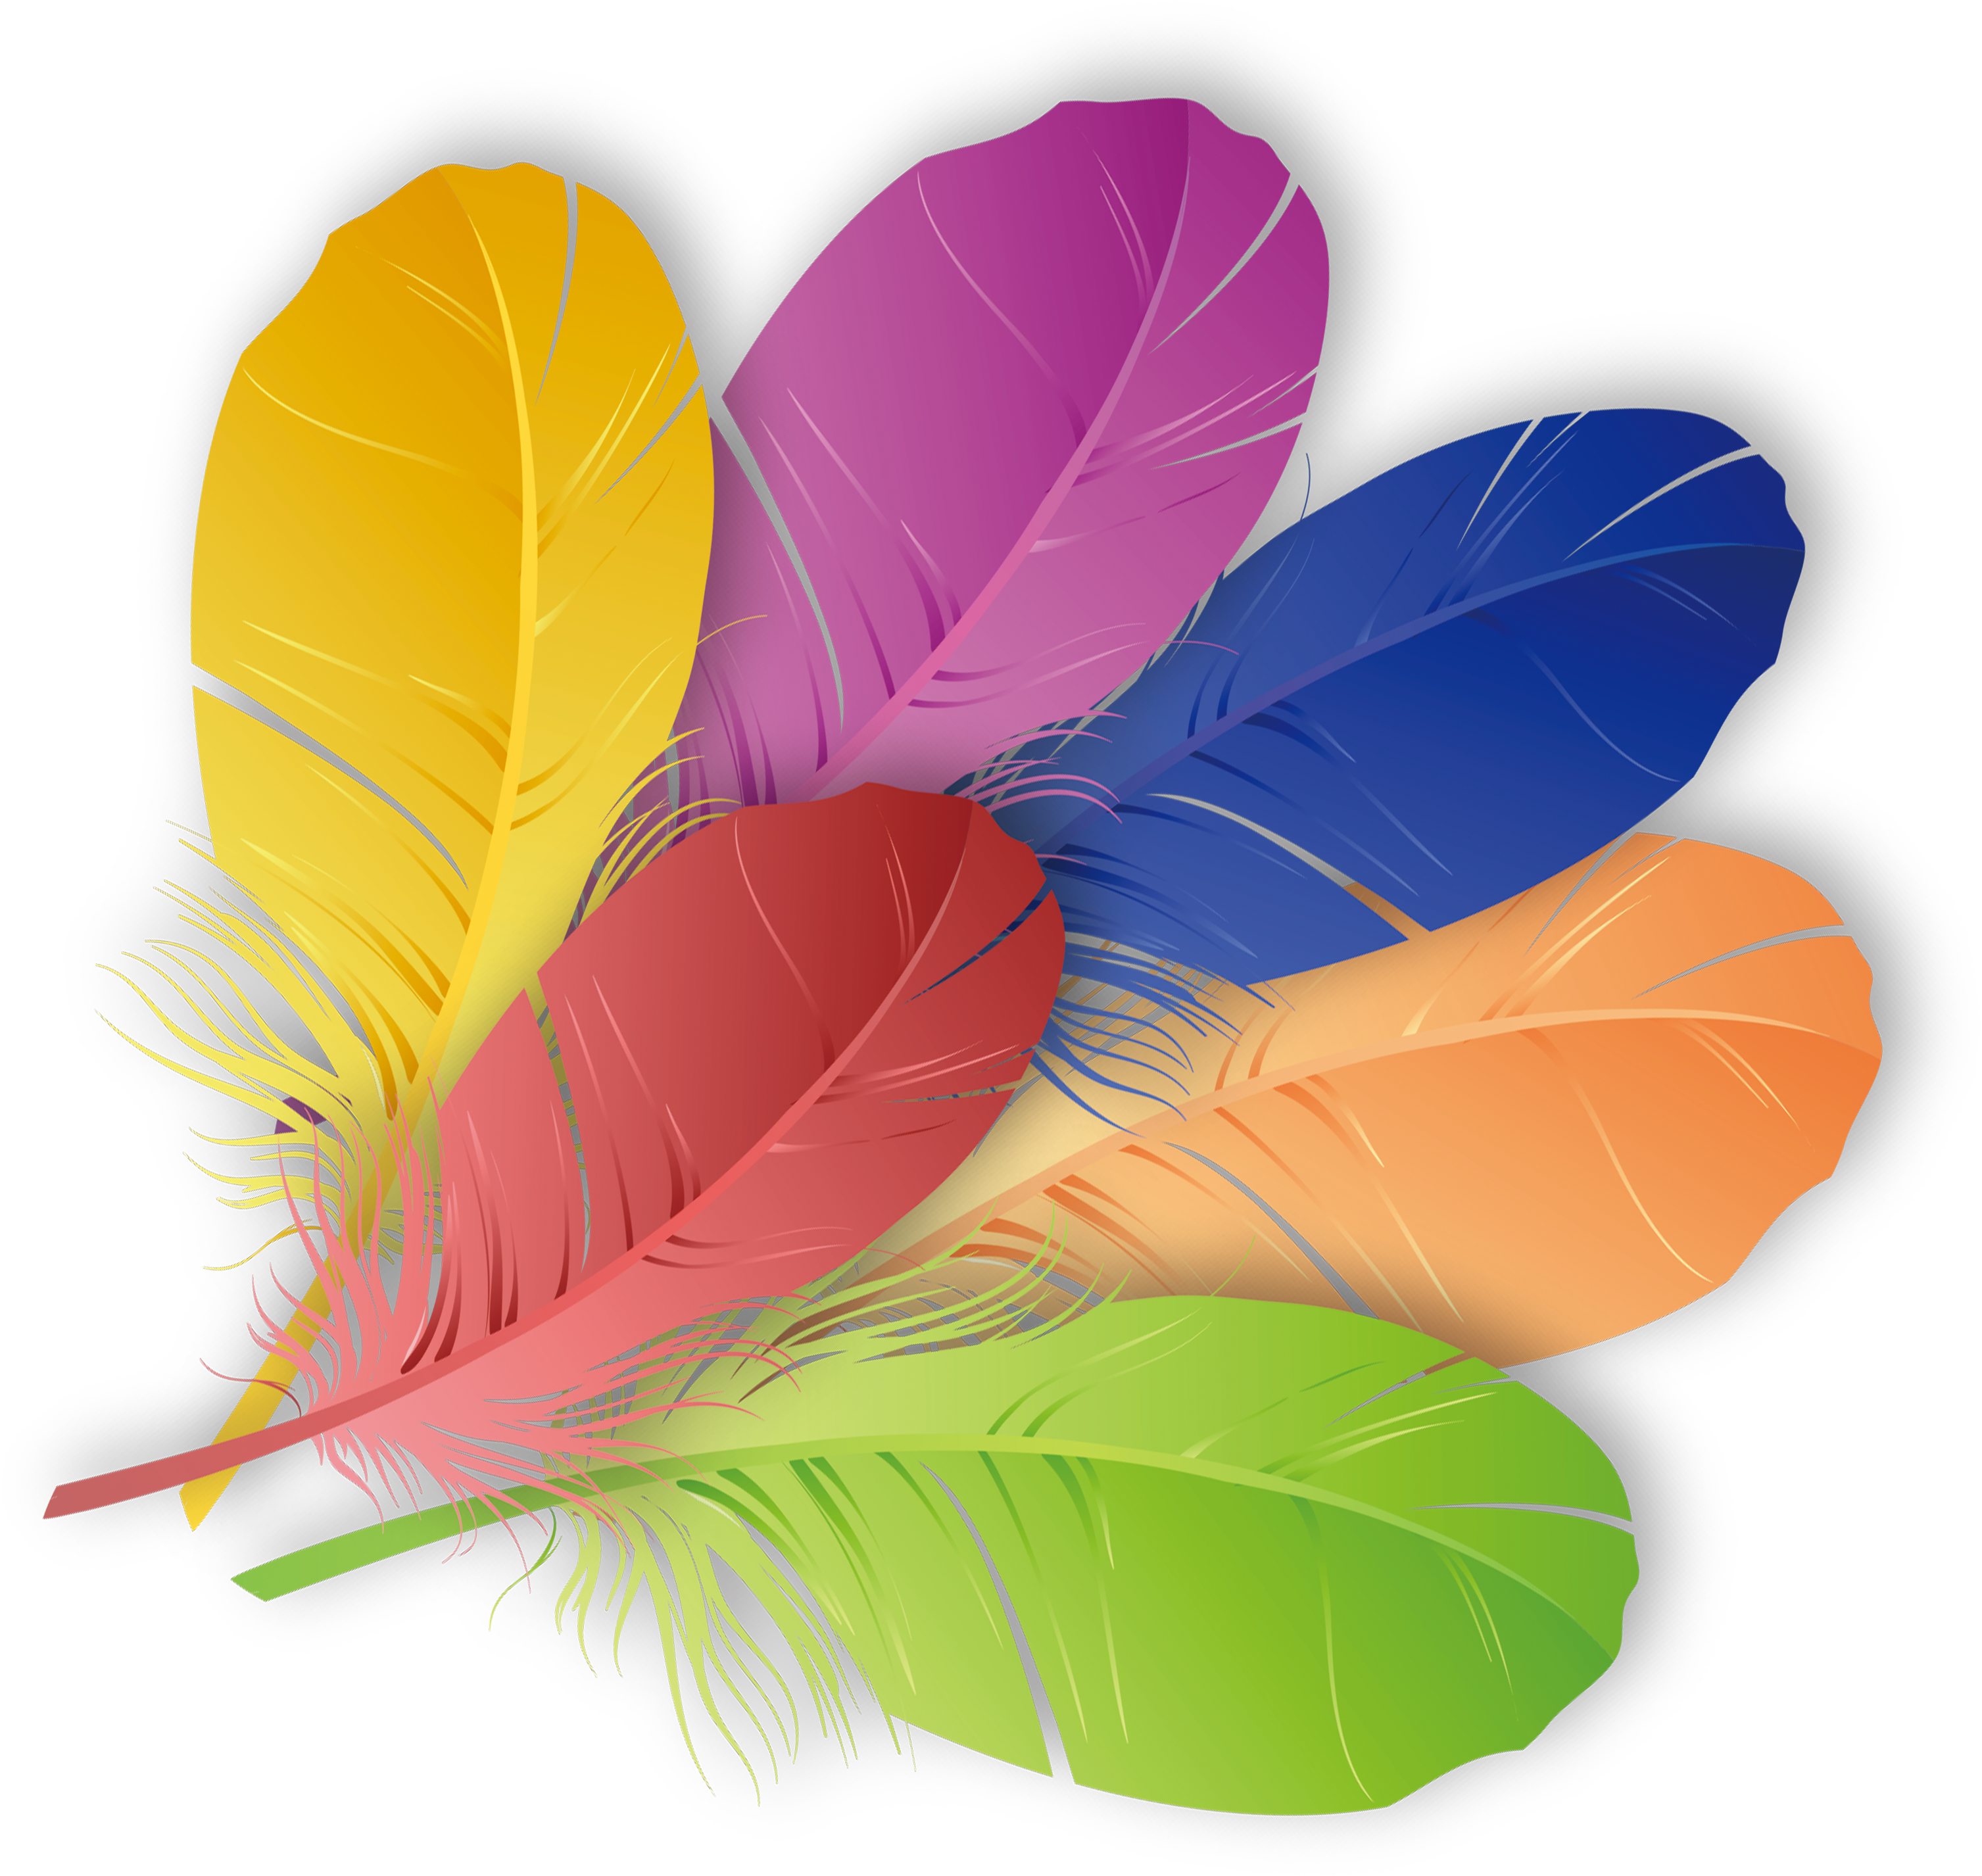 Feather clipart orange feather. The floating color colored